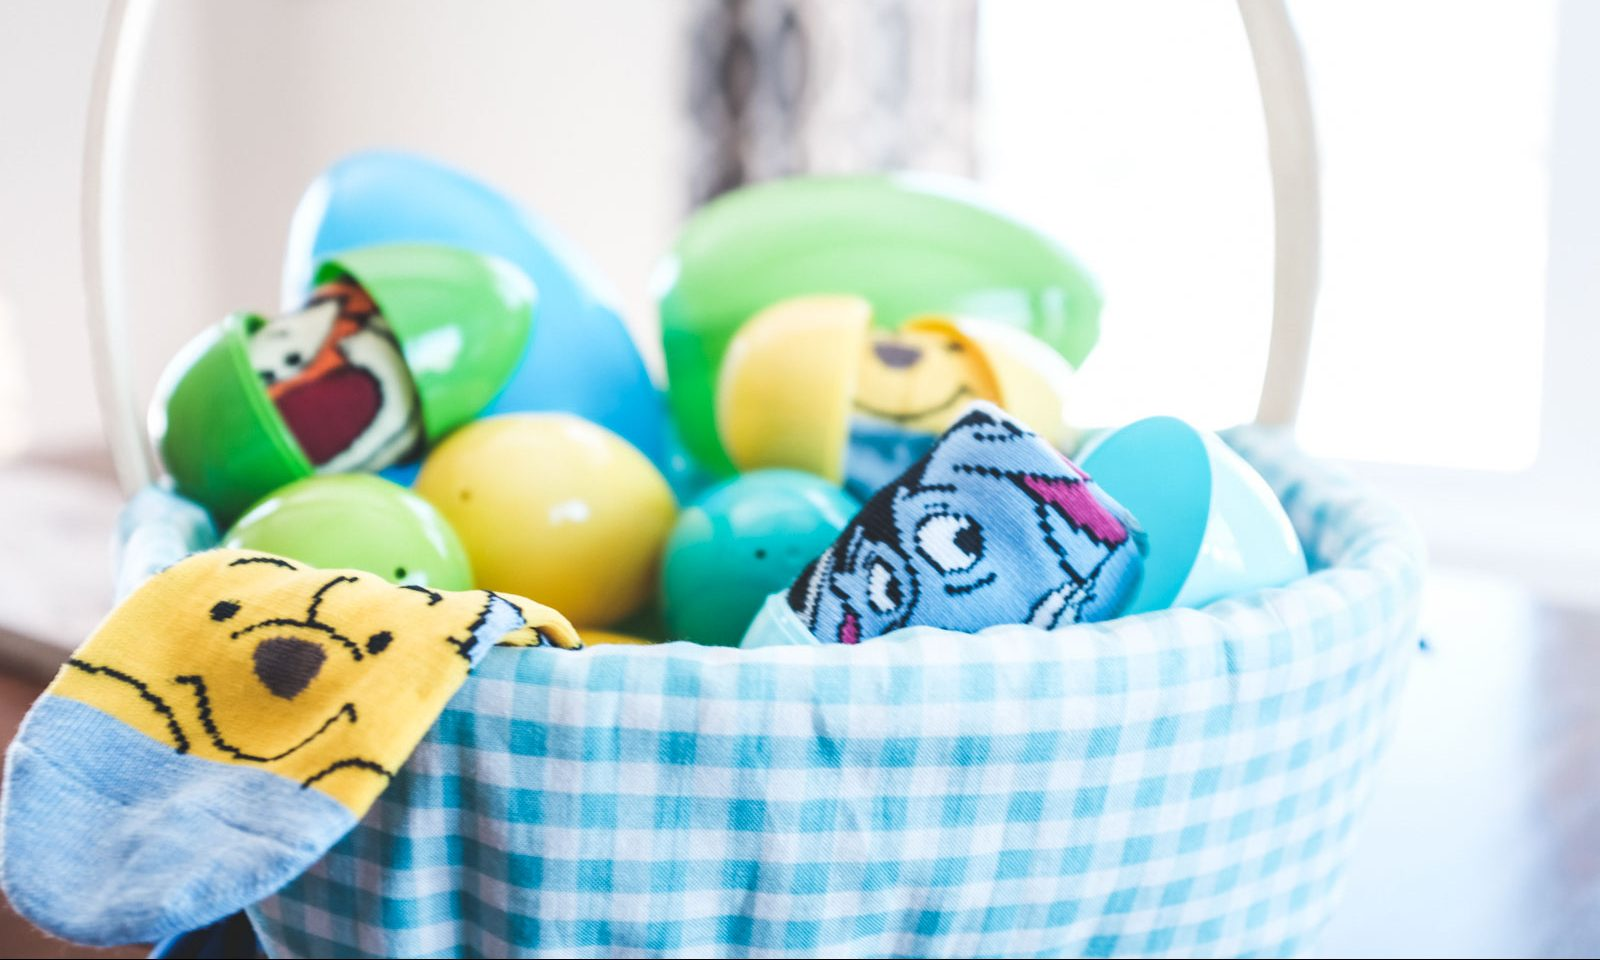 fun and practical ideas for an easter egg hunt with food allergies